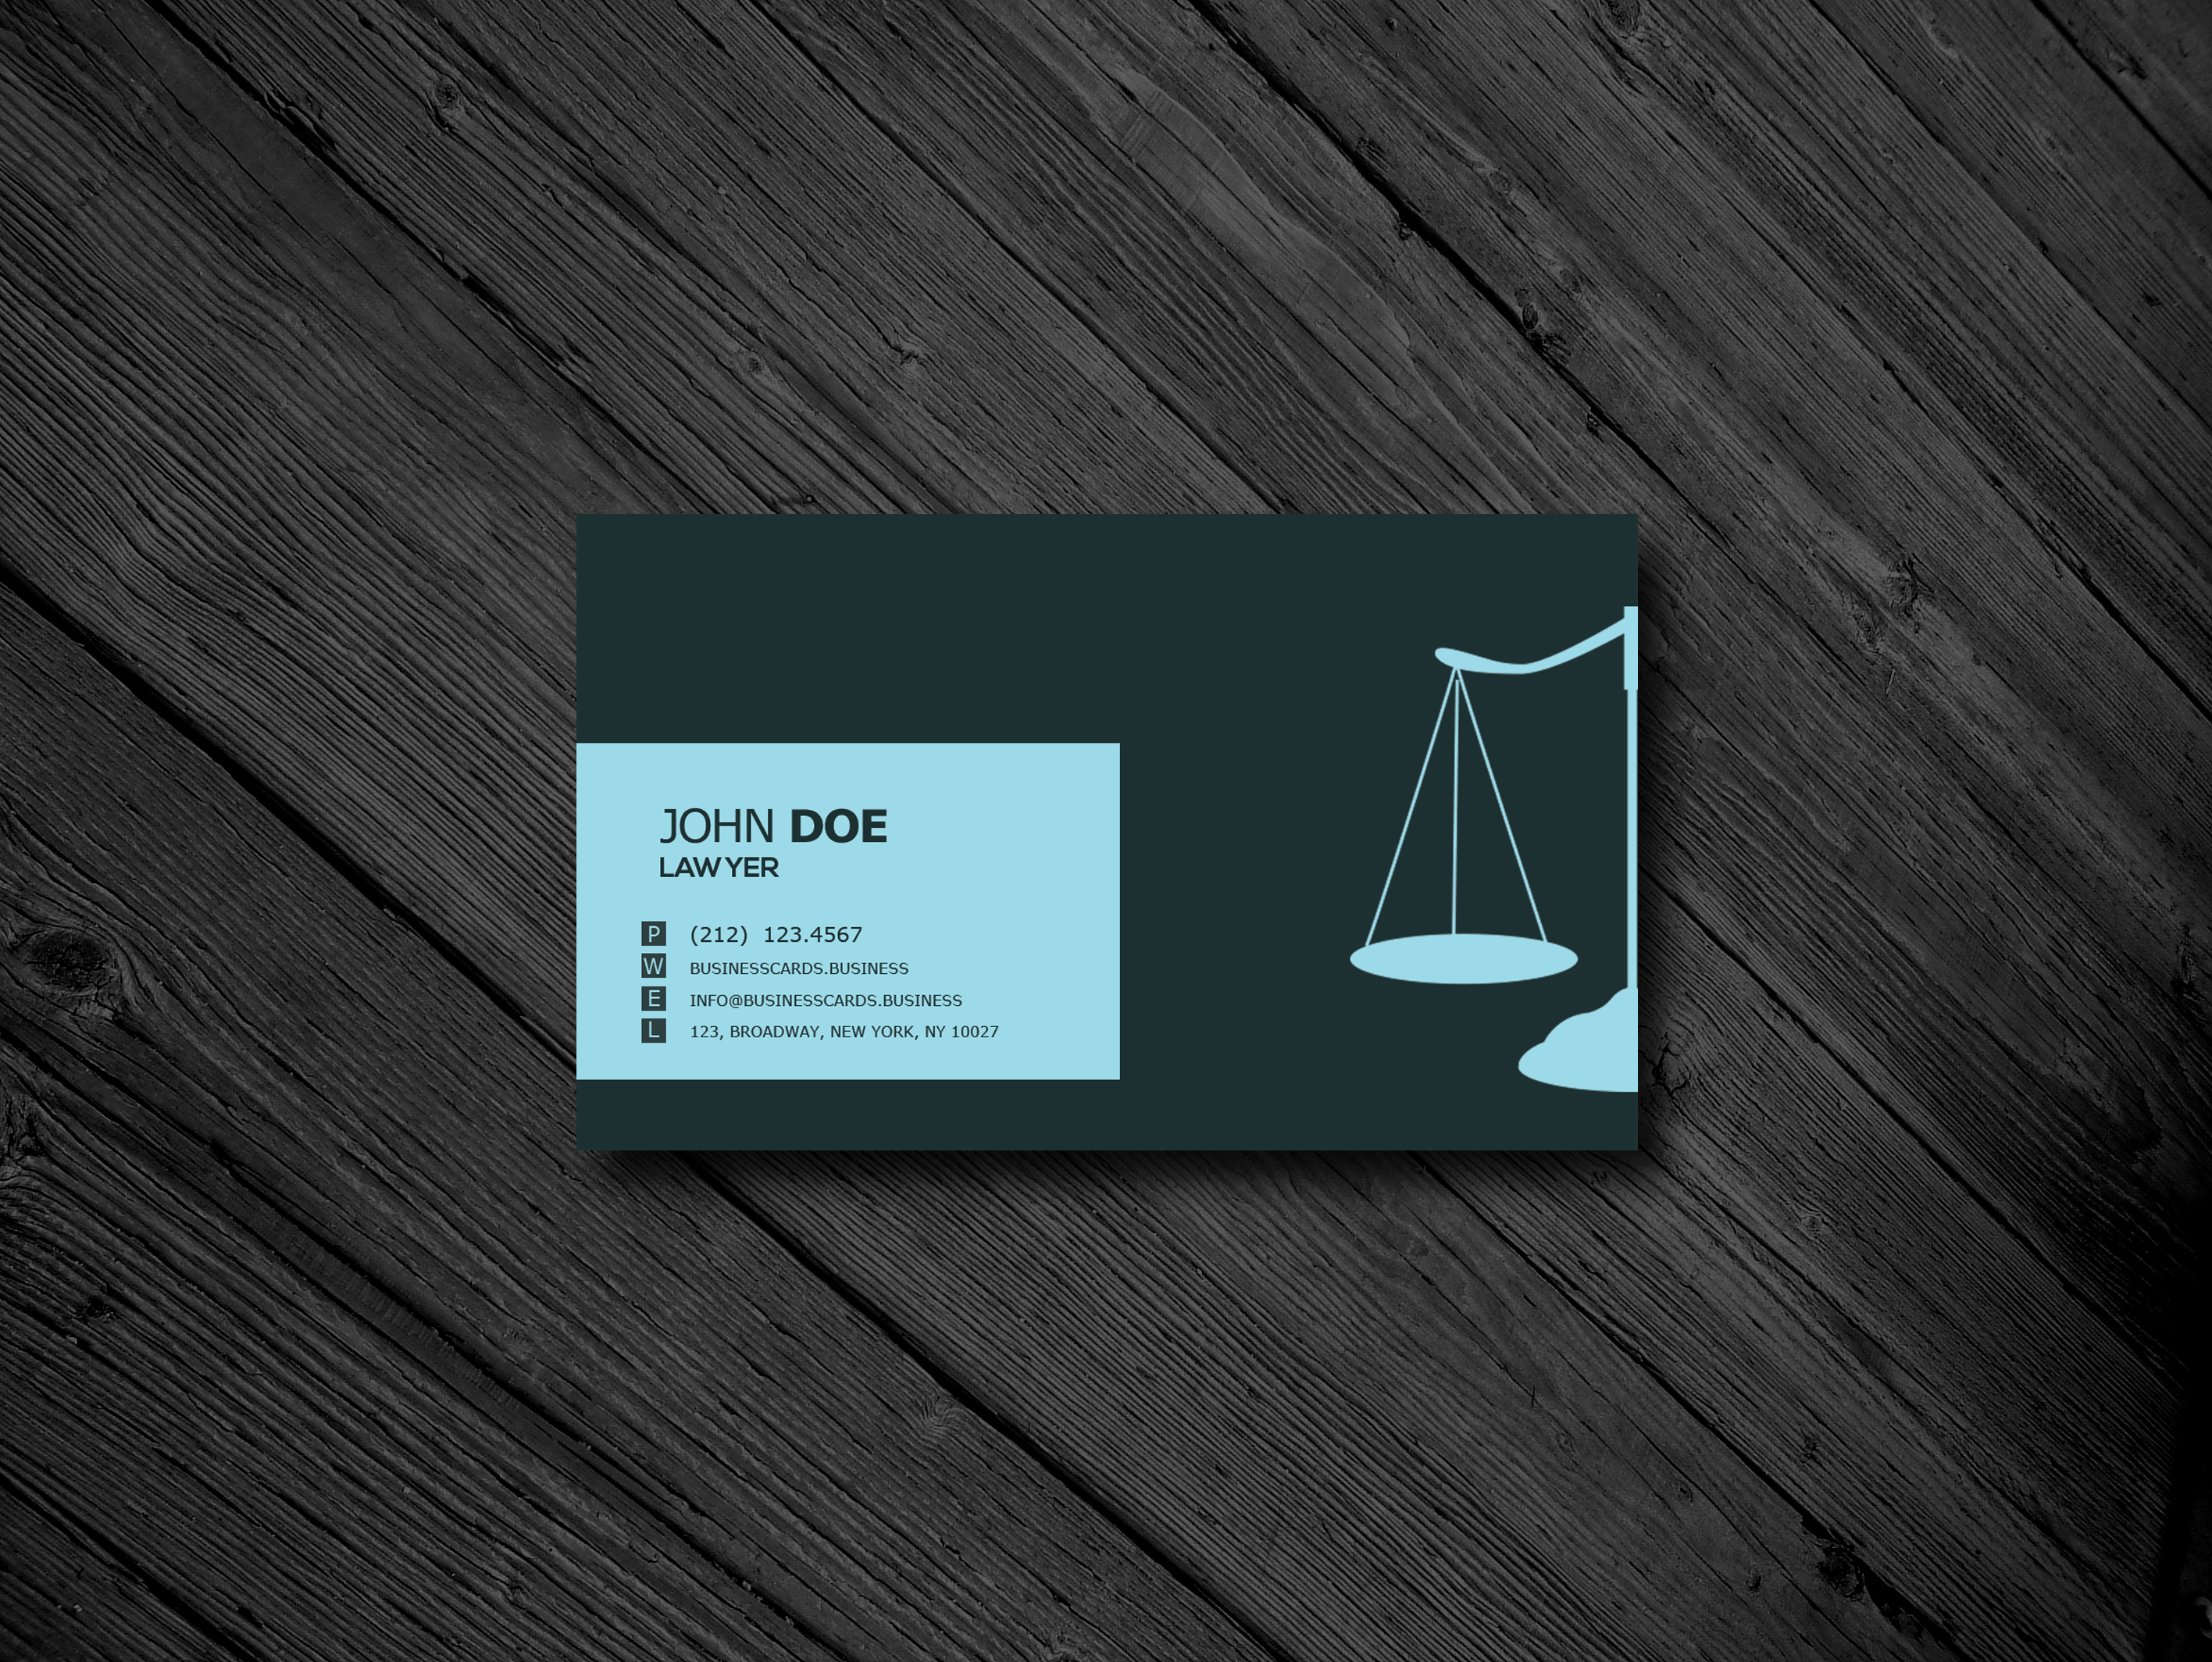 Free business card templates business cards templates free lawyer business card psd template colourmoves